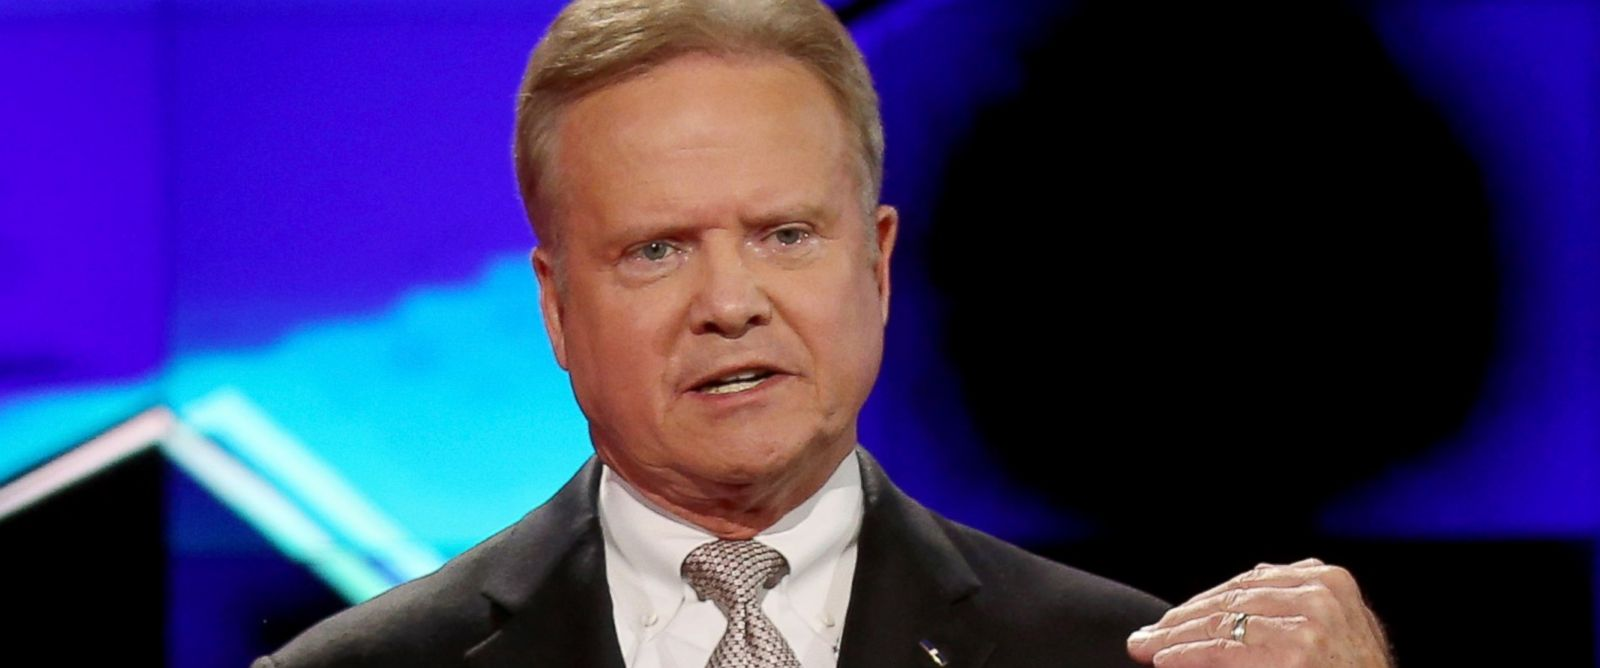 PHOTO: Democratic presidential candidate Jim Webb takes part in a presidential debate sponsored by CNN and Facebook at Wynn Las Vegas, Oct. 13, 2015.